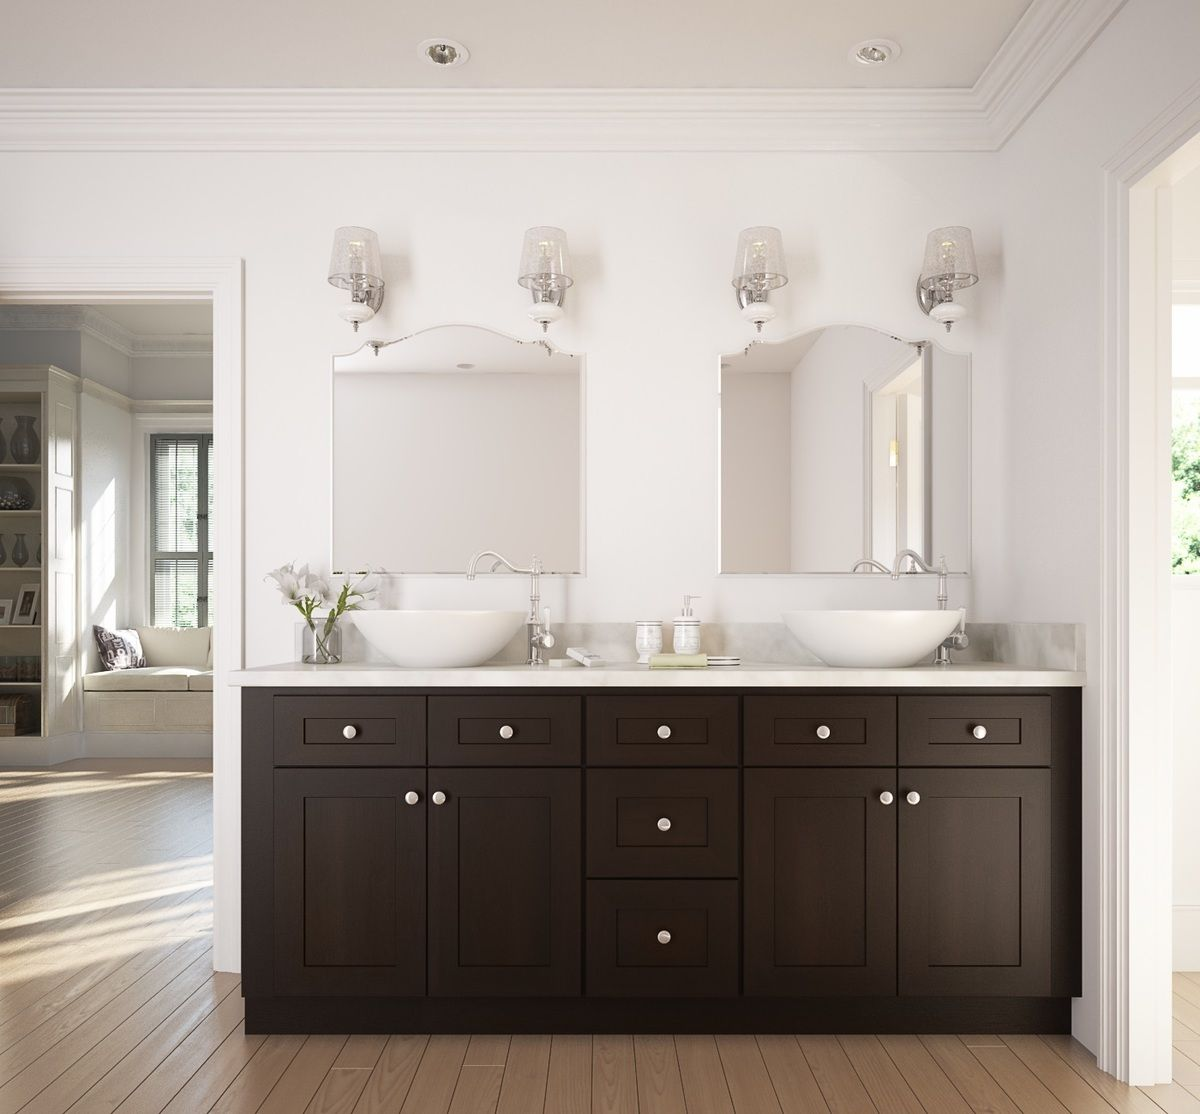 Dark chocolate shaker bathroom vanity rta bathroom - Type of paint for bathroom cabinets ...